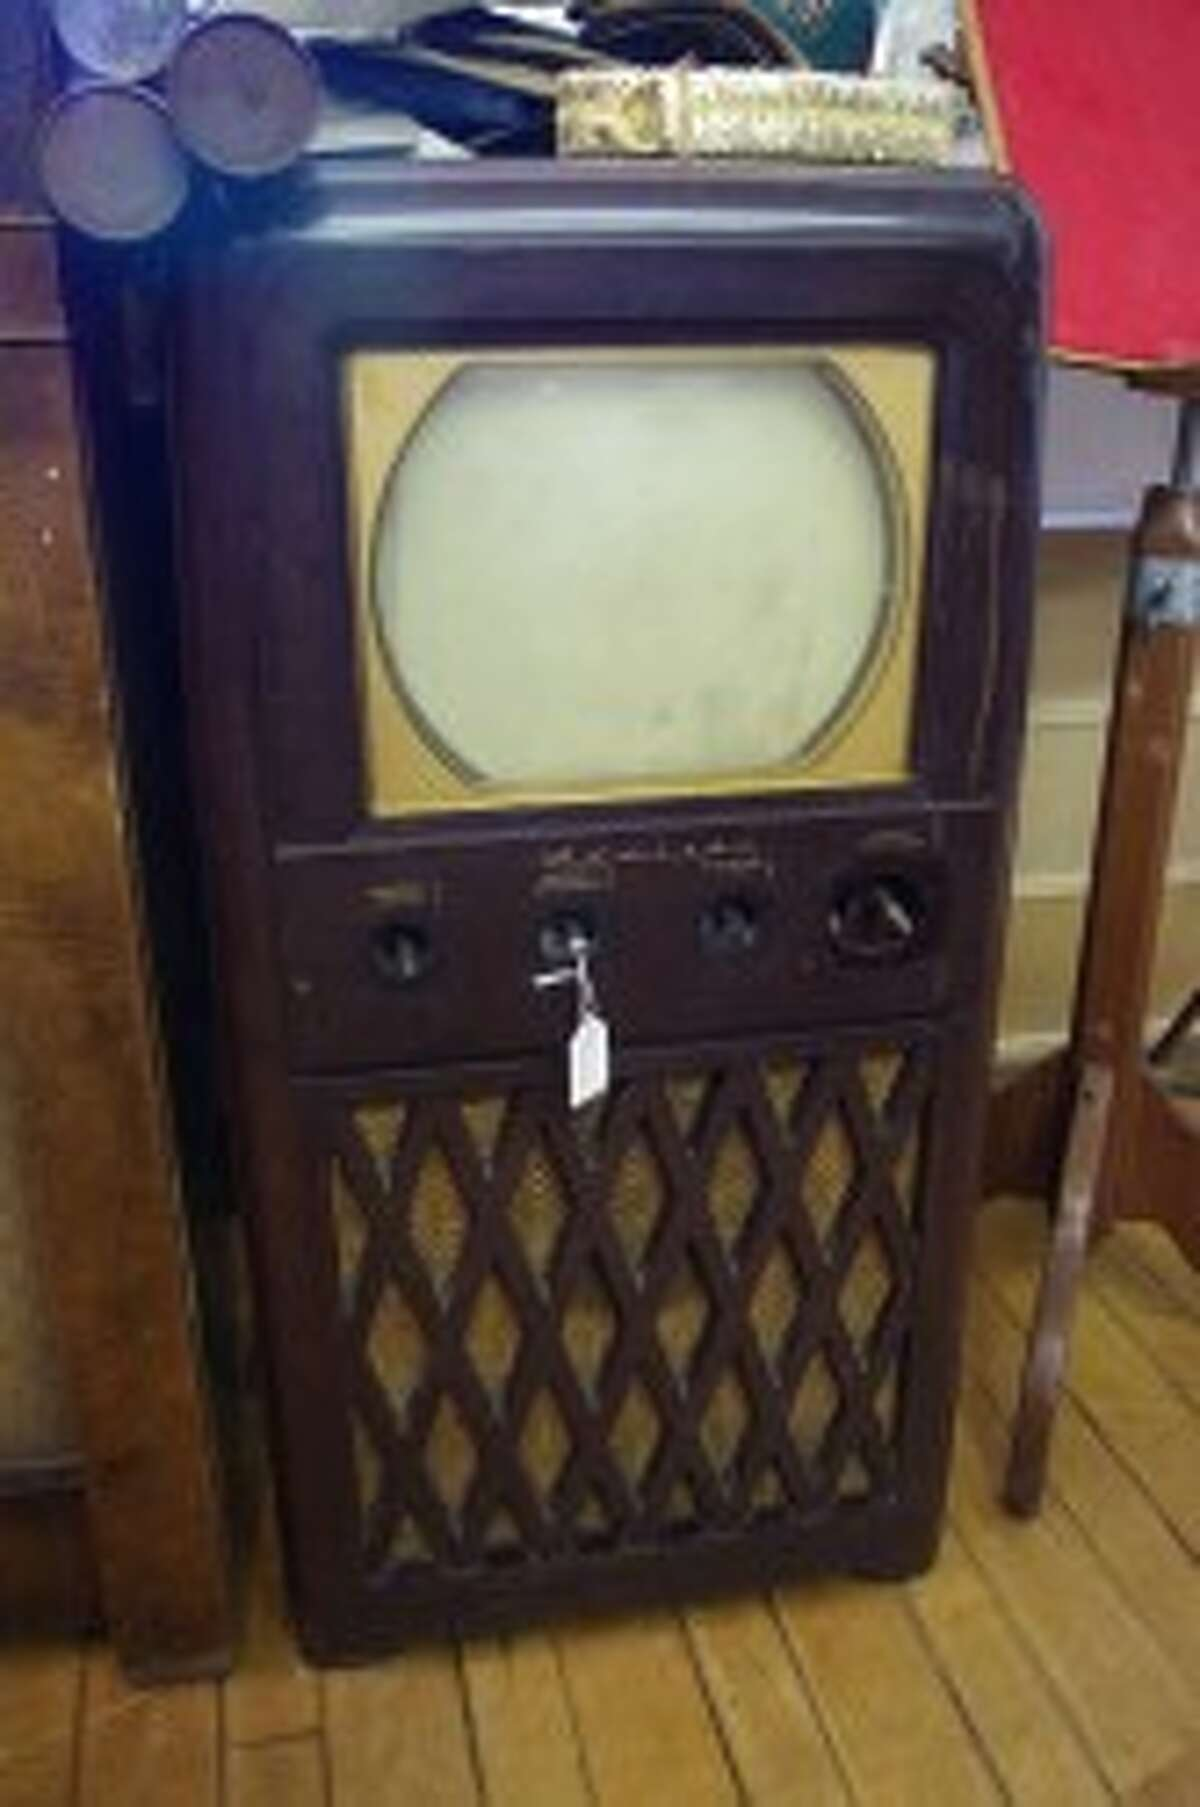 This antique television is one of the items collected by John Dalke over the years that is now for sale at Play It Again Johnny in downtown Manistee. (Dave Yarnell/News Advocate)